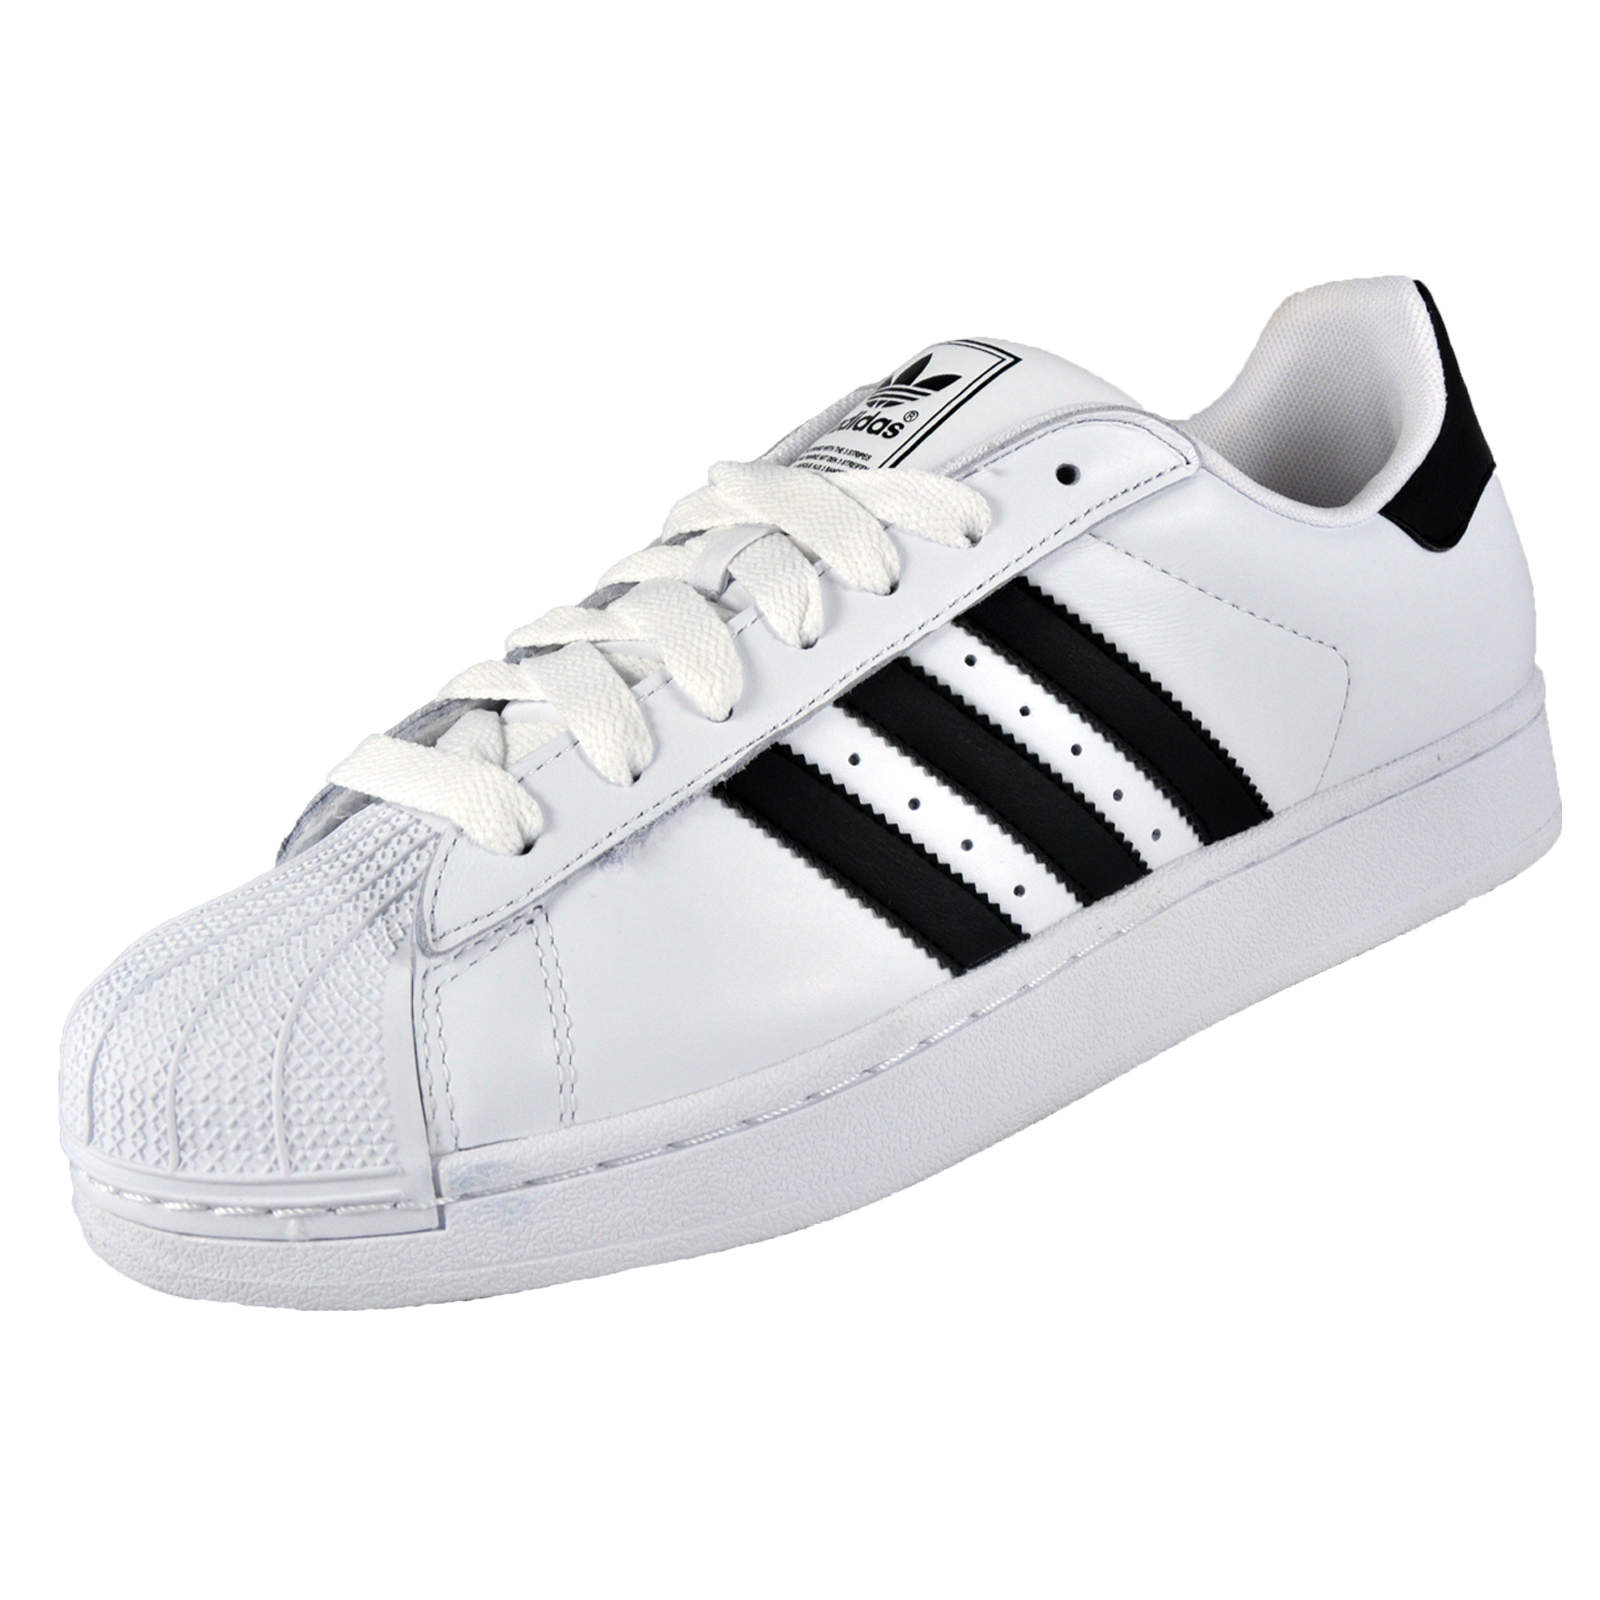 sports shoes 45f1e 1744a Adidas Superstar 2 Mens Classic Retro Trainers White   Black